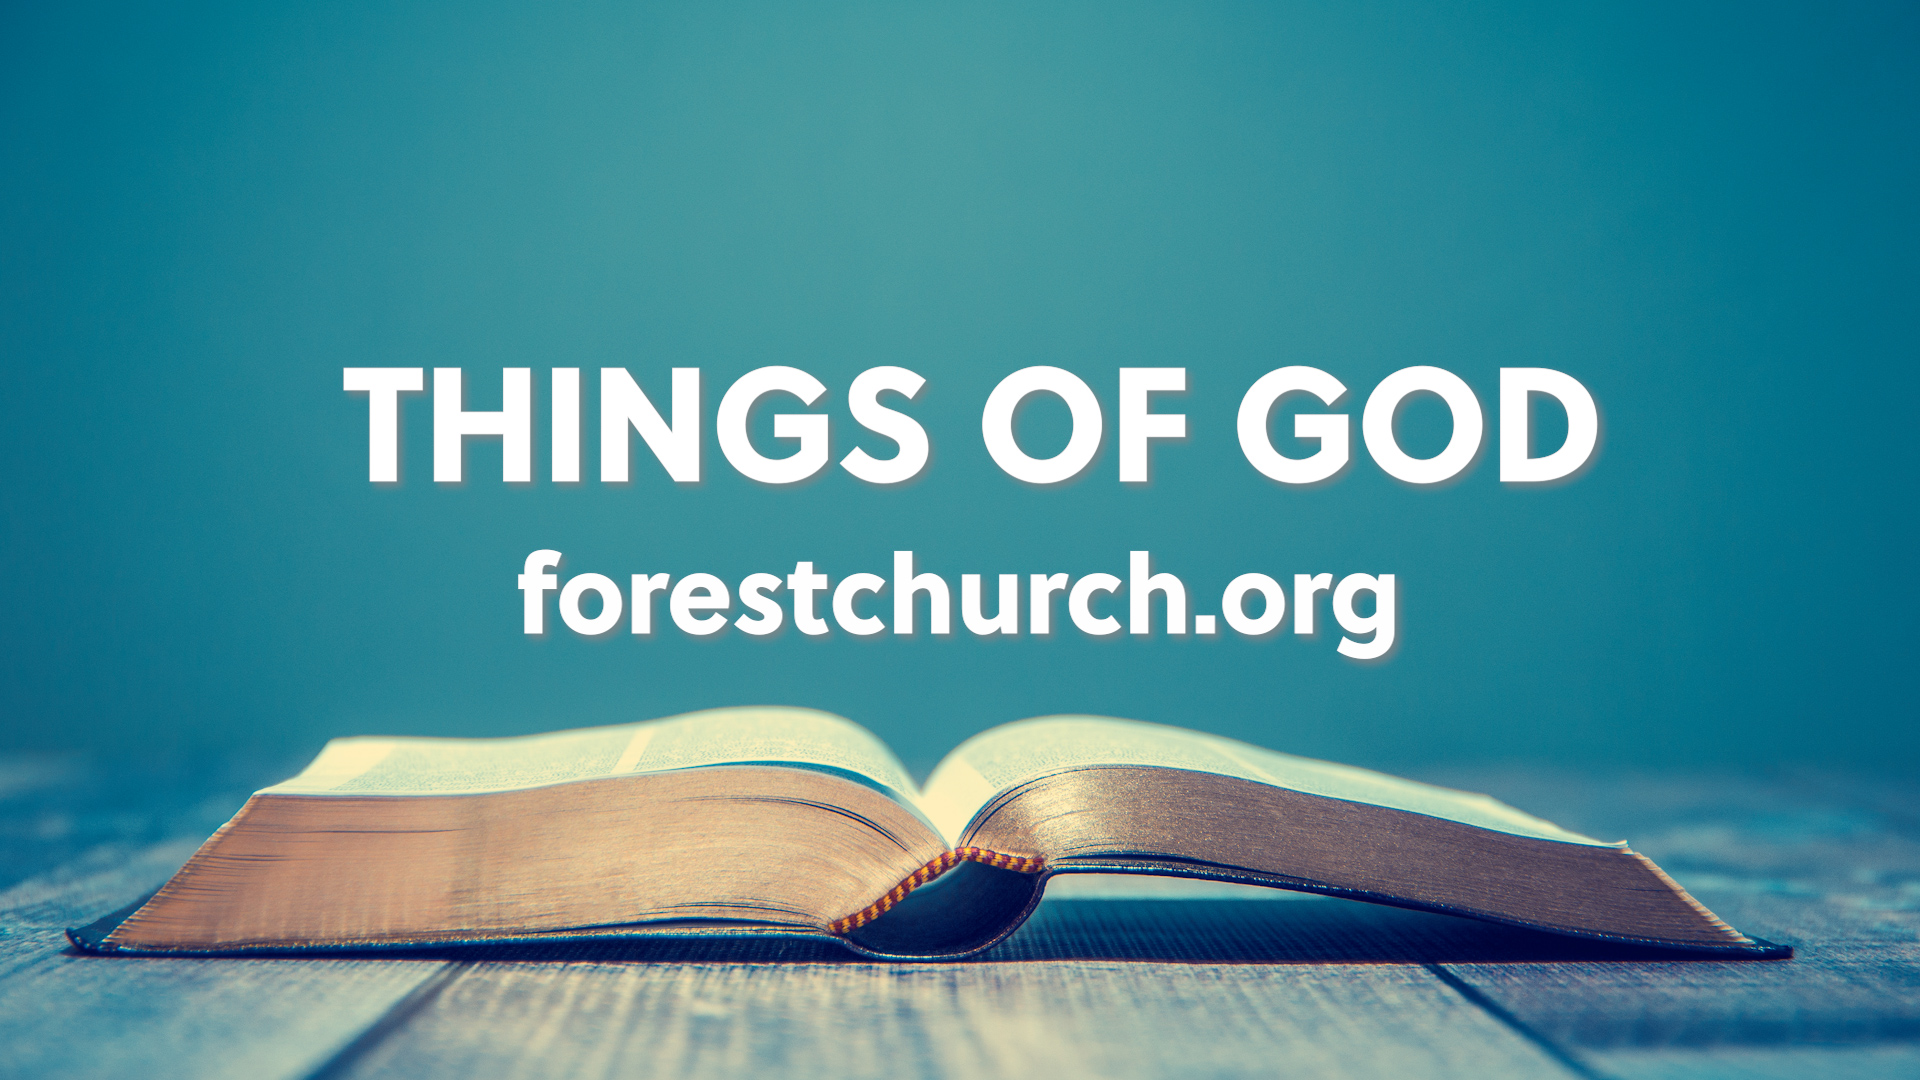 Things of God